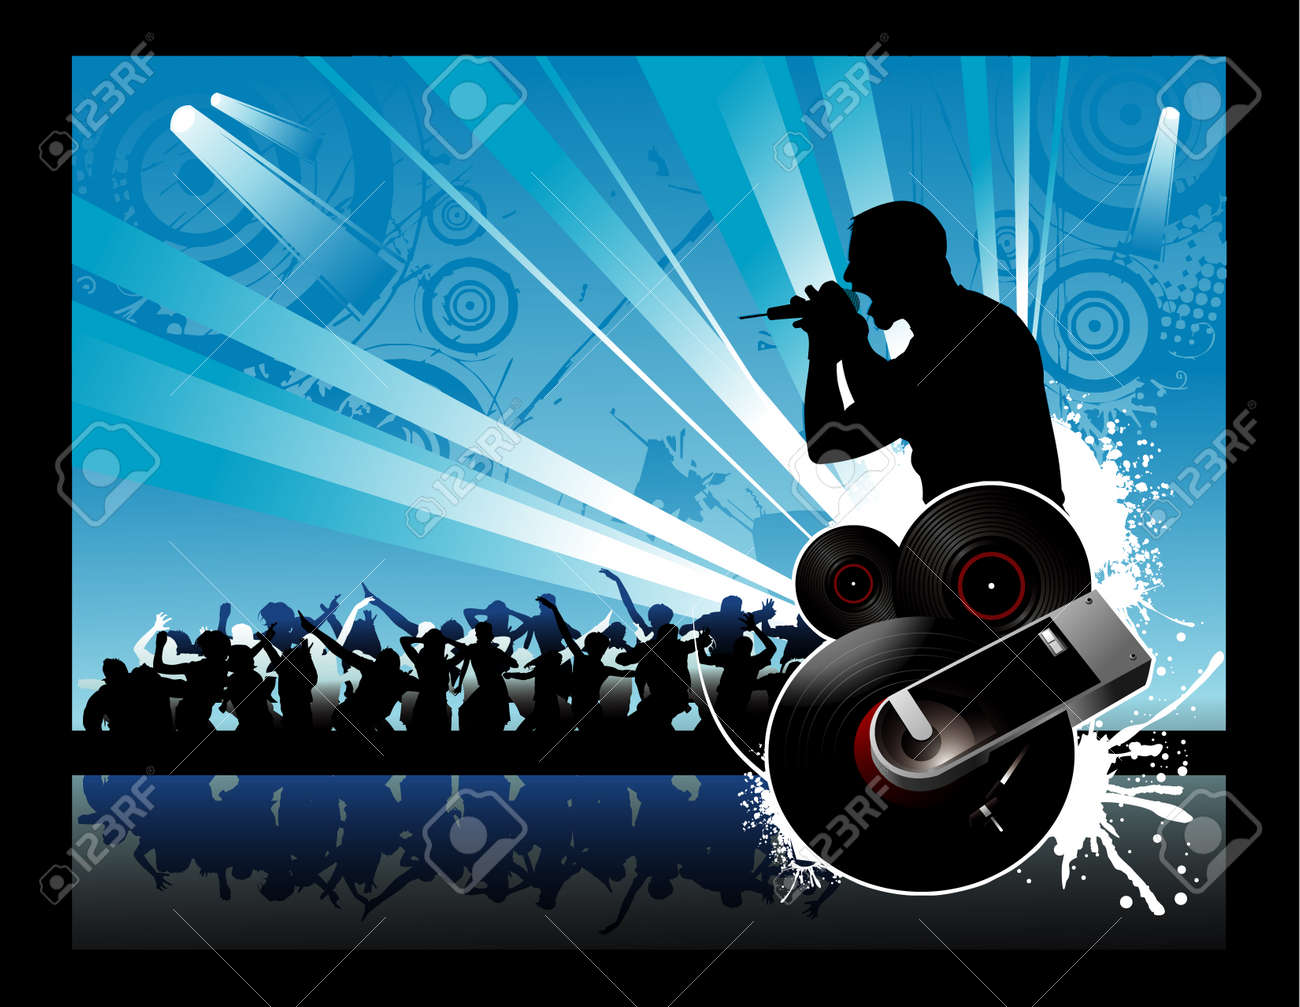 Pics photos rock concert background - Vector Vector Illustration Of A Rock Concert With Cool Background